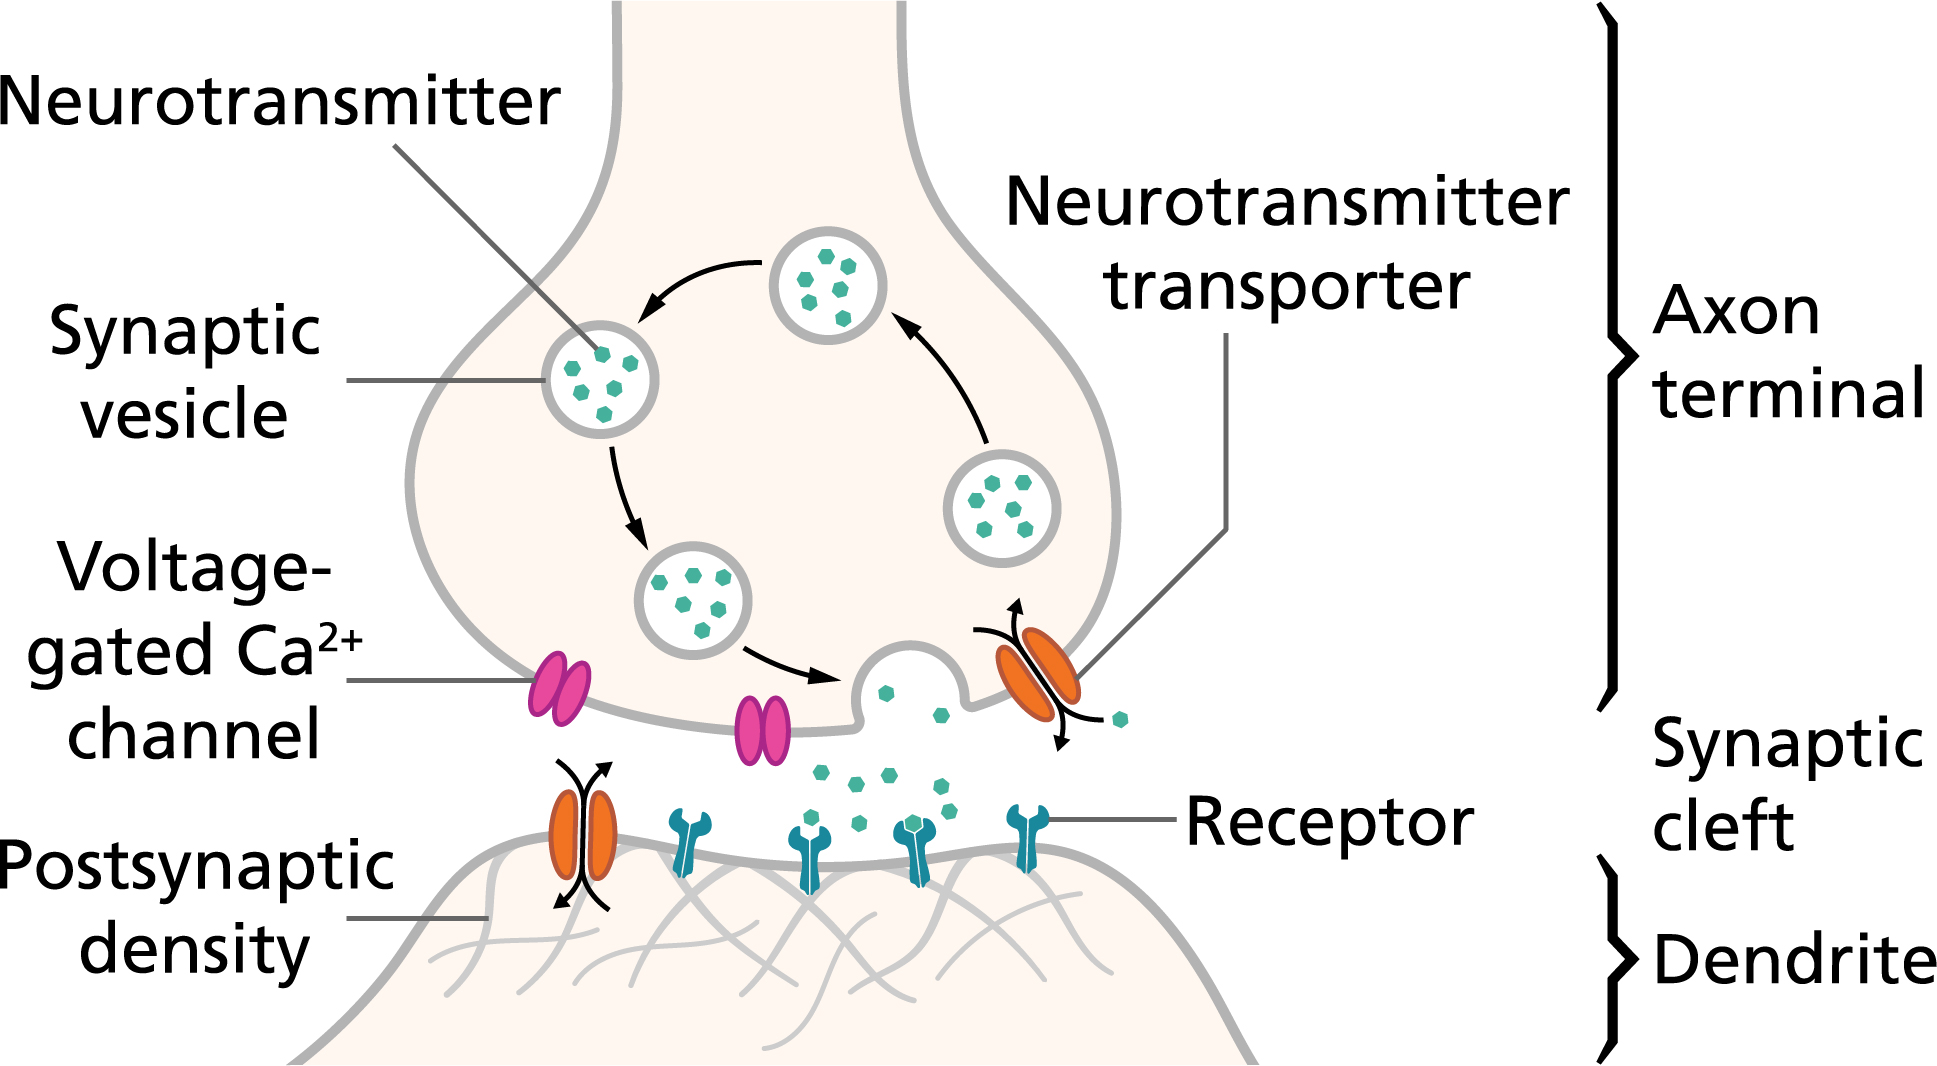 action potentials and synapses queensland brain institute Neuron Diagram Labeled an action potential, or spike, causes neurotransmitters to be released across the synaptic cleft, causing an electrical signal in the postsynaptic neuron